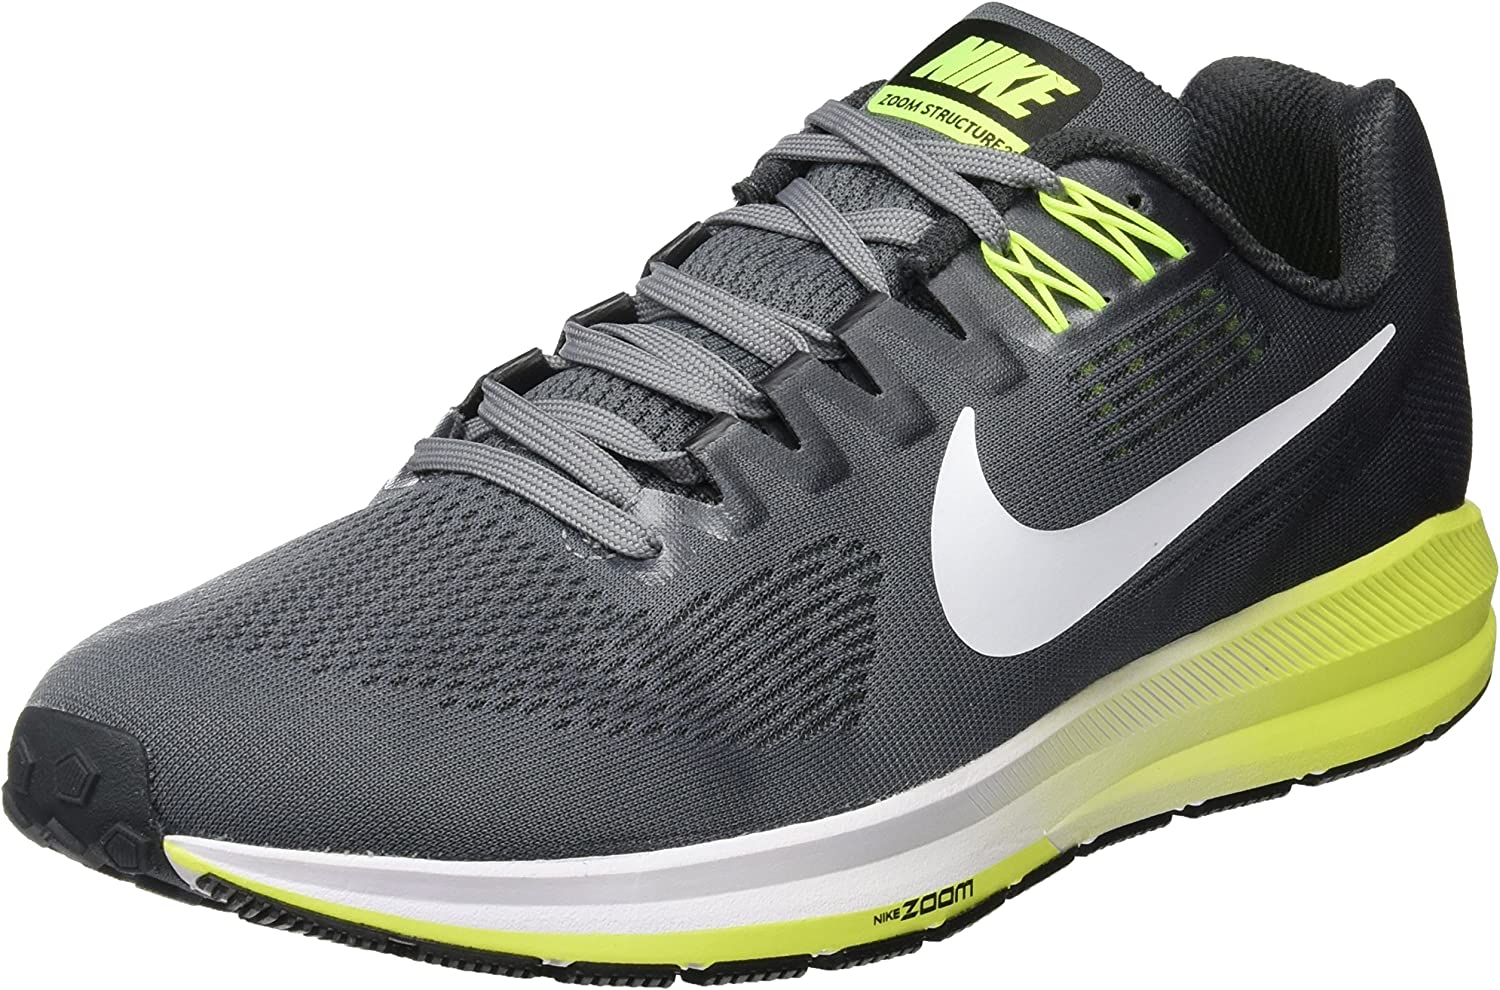 Nike Men s Air Zoom Structure 21 Running Shoe Cool Grey White-Anthracite-Volt 12.0